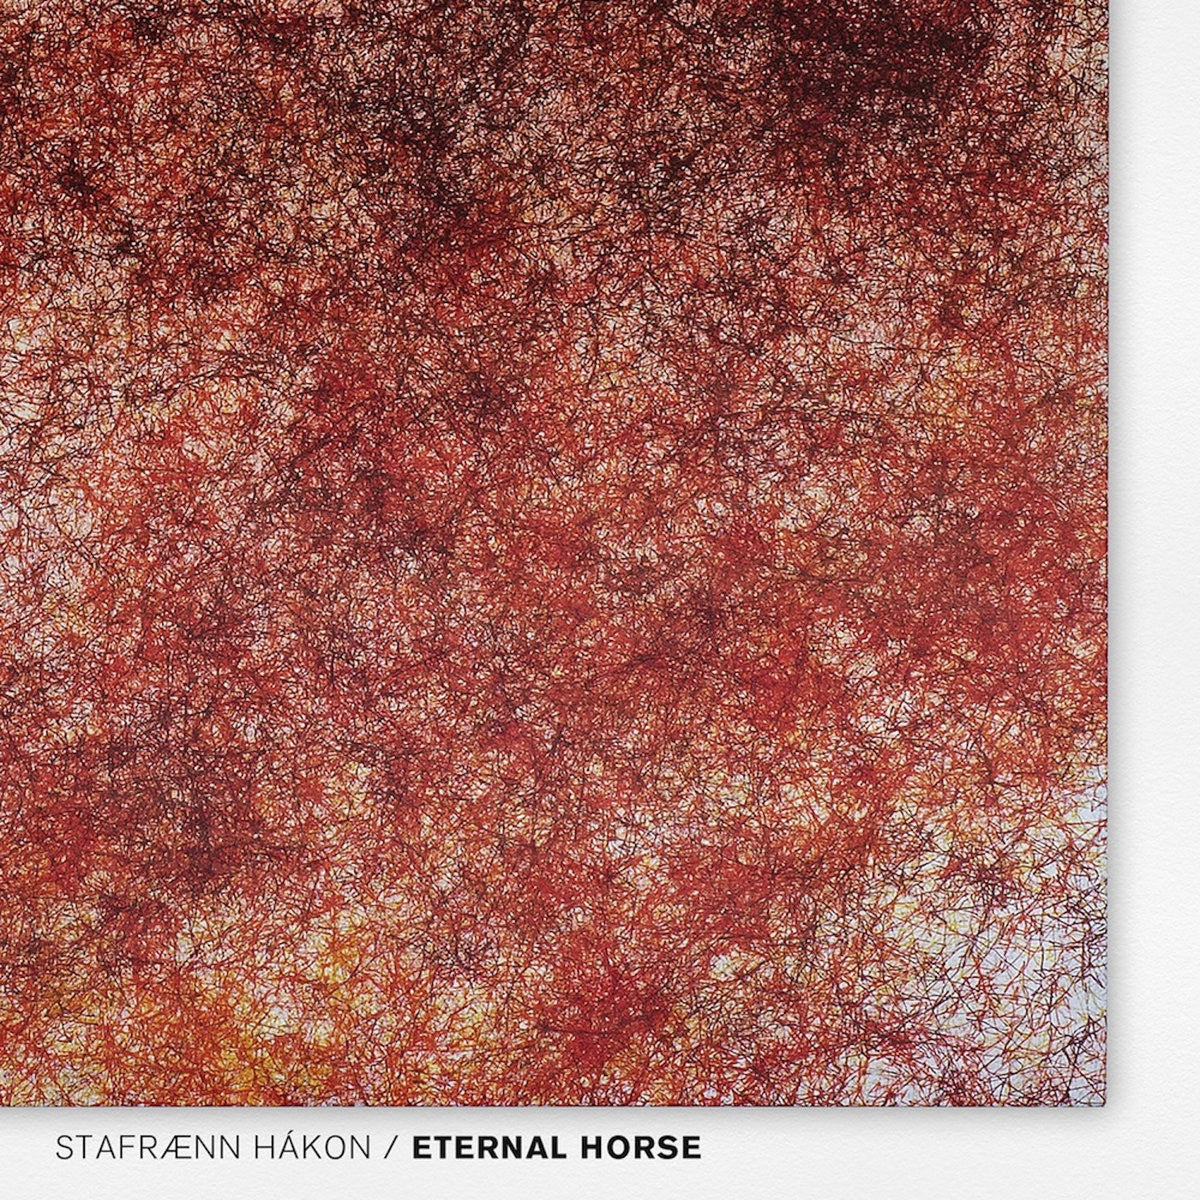 Stafraenn Hakon - Eternal Horse